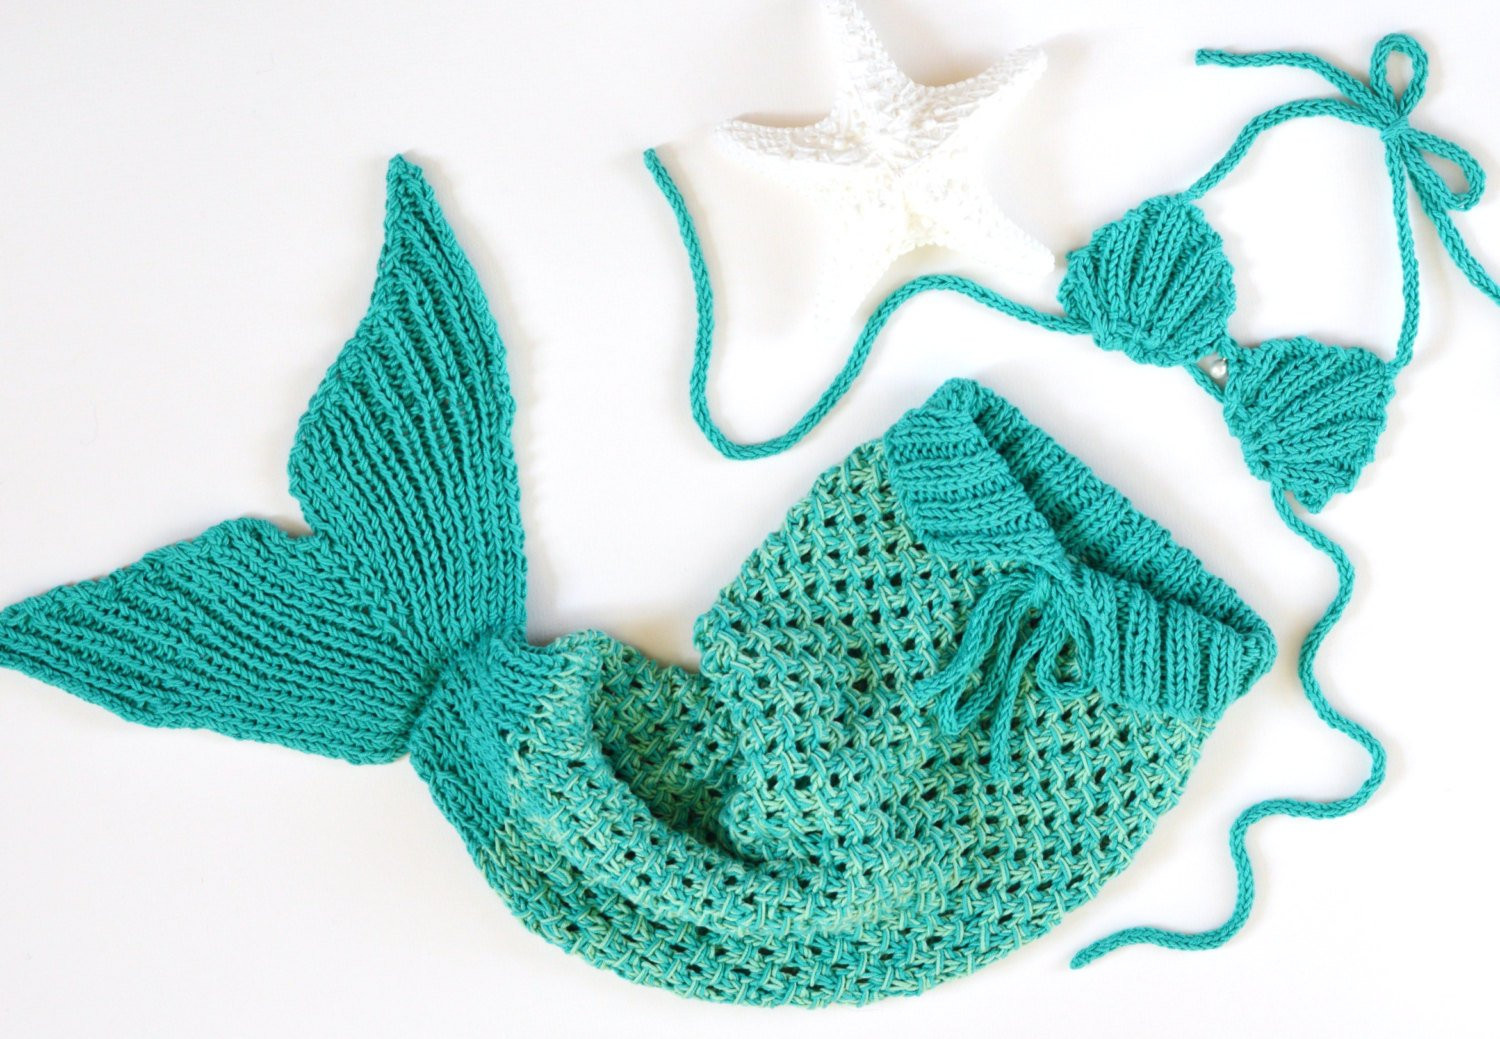 Baby Mermaid Tail Fresh Knitting Pattern Baby Mermaid Tail Blanket 5 Sizes Newborn 1 Of Fresh 41 Pictures Baby Mermaid Tail